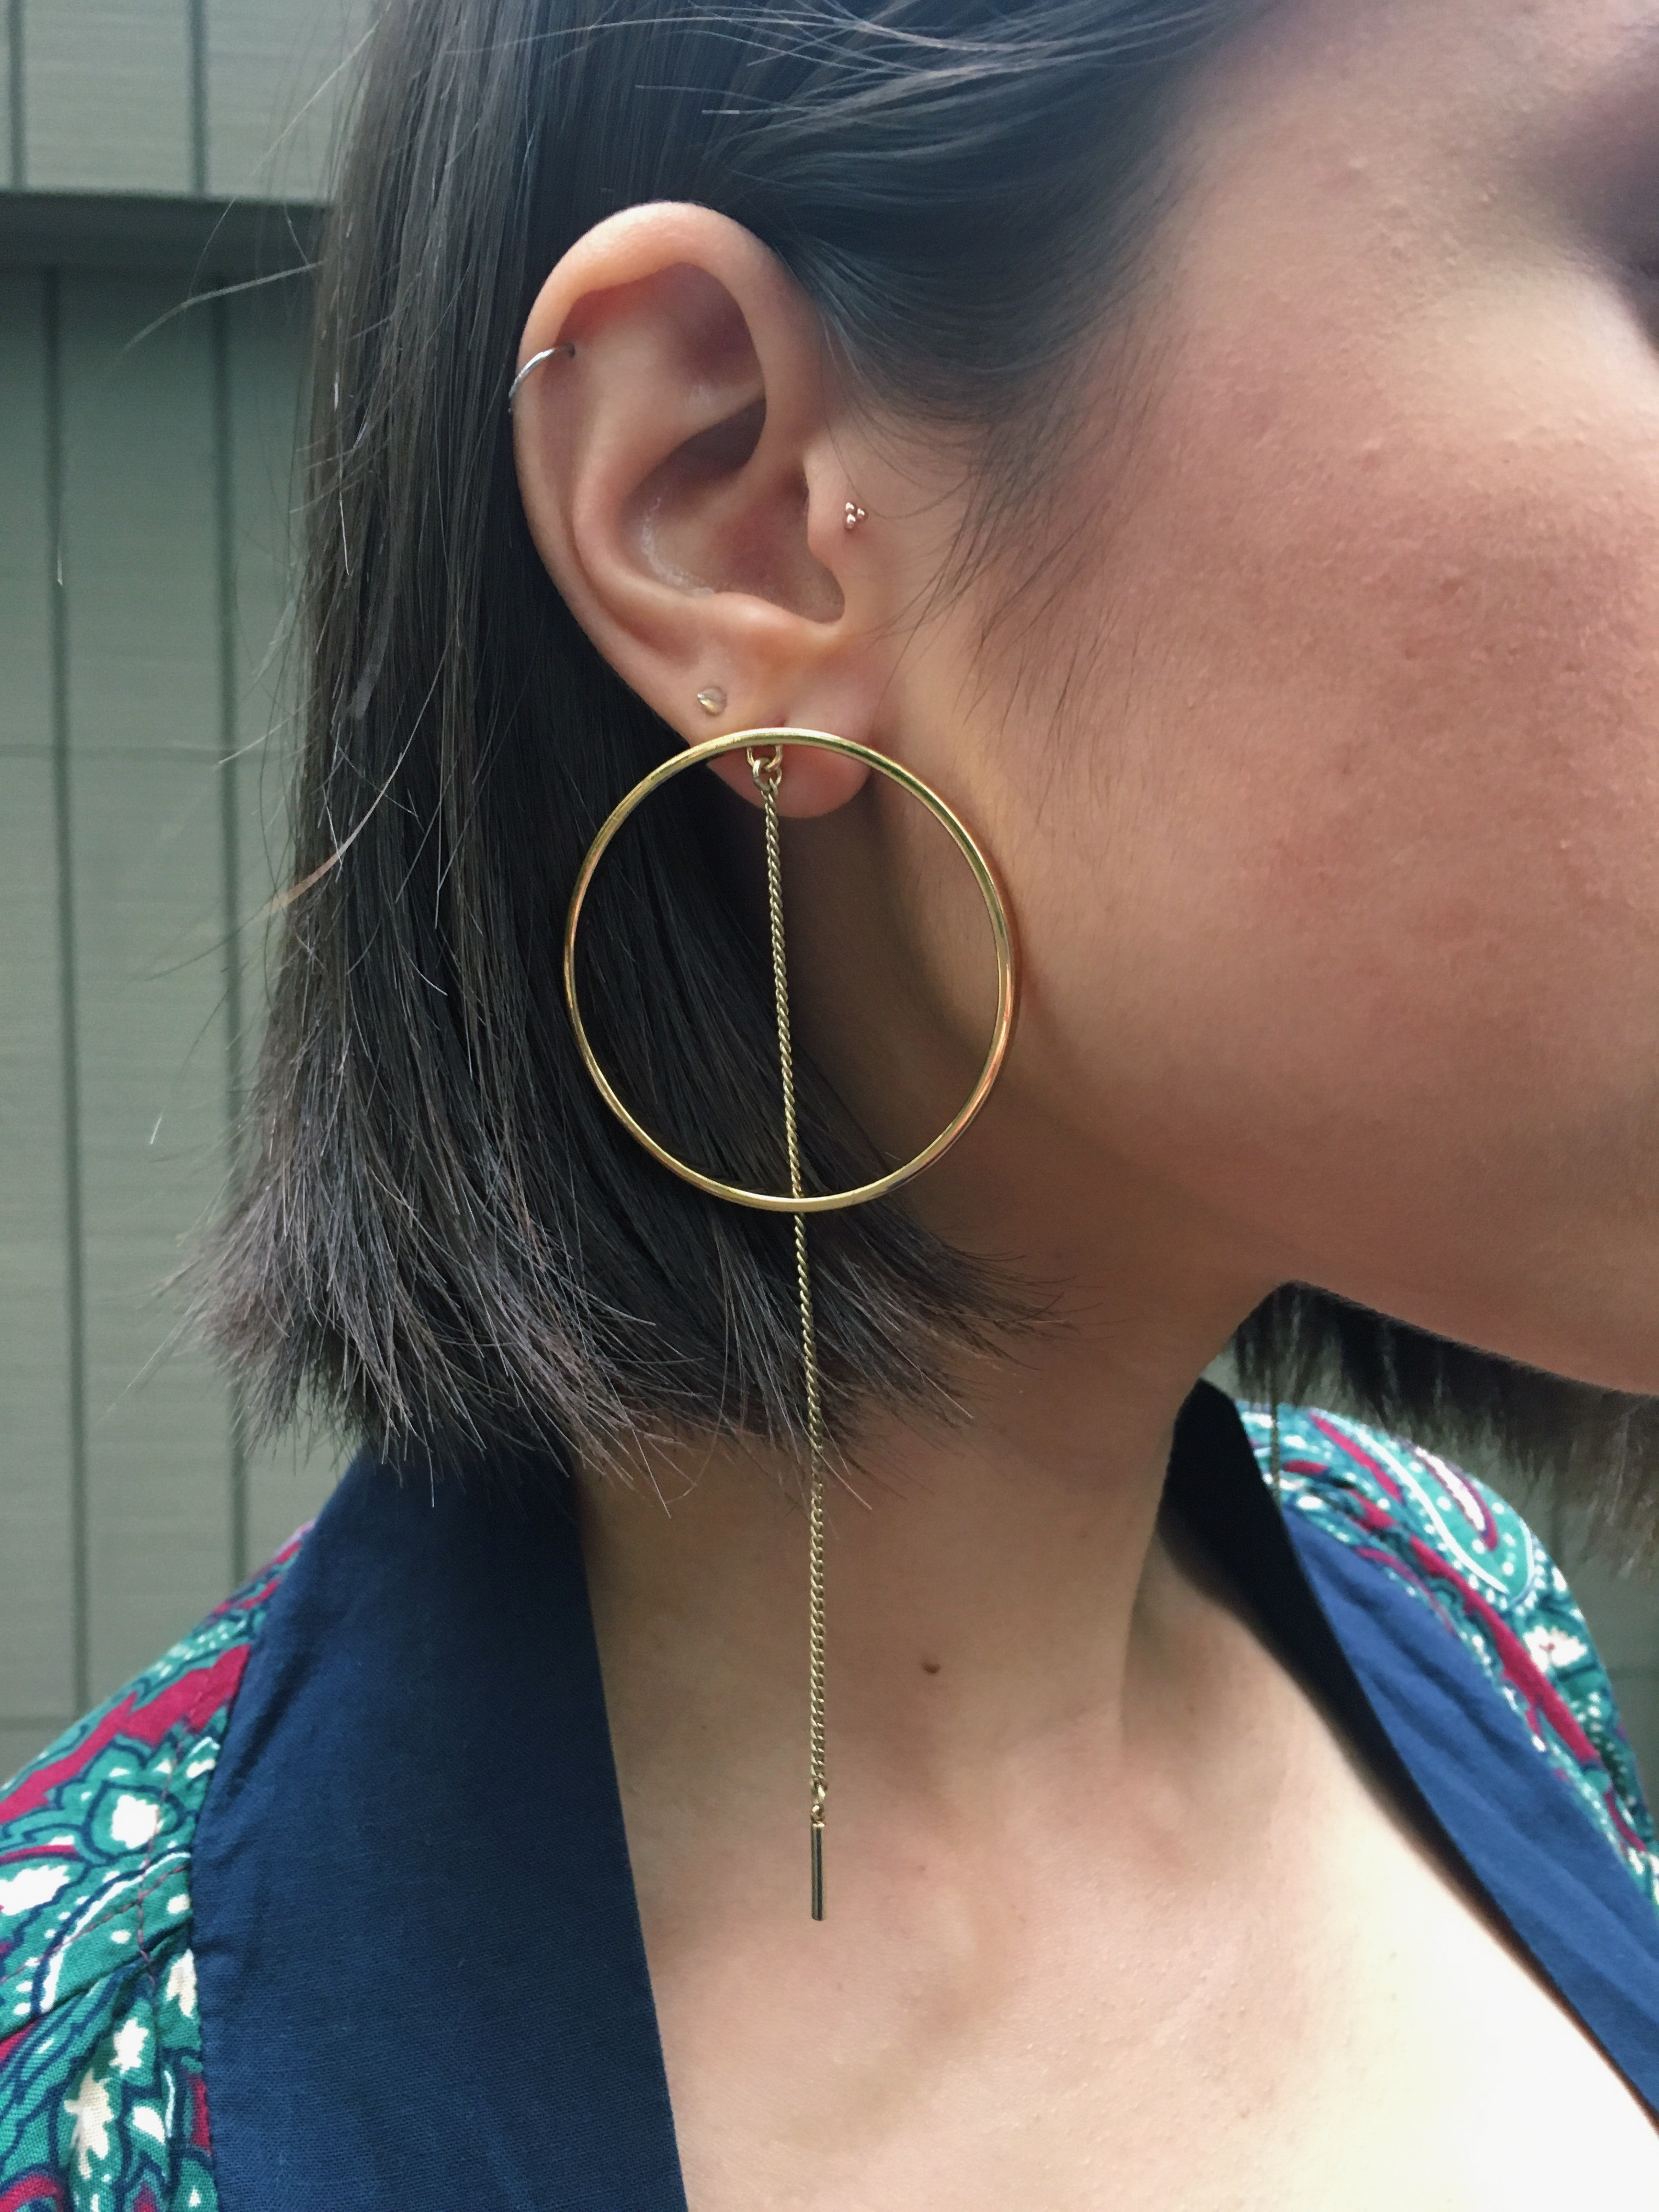 Fashion blogger That Time I Wore wears gold hoop earrings from Jenny Bird Jewelry.